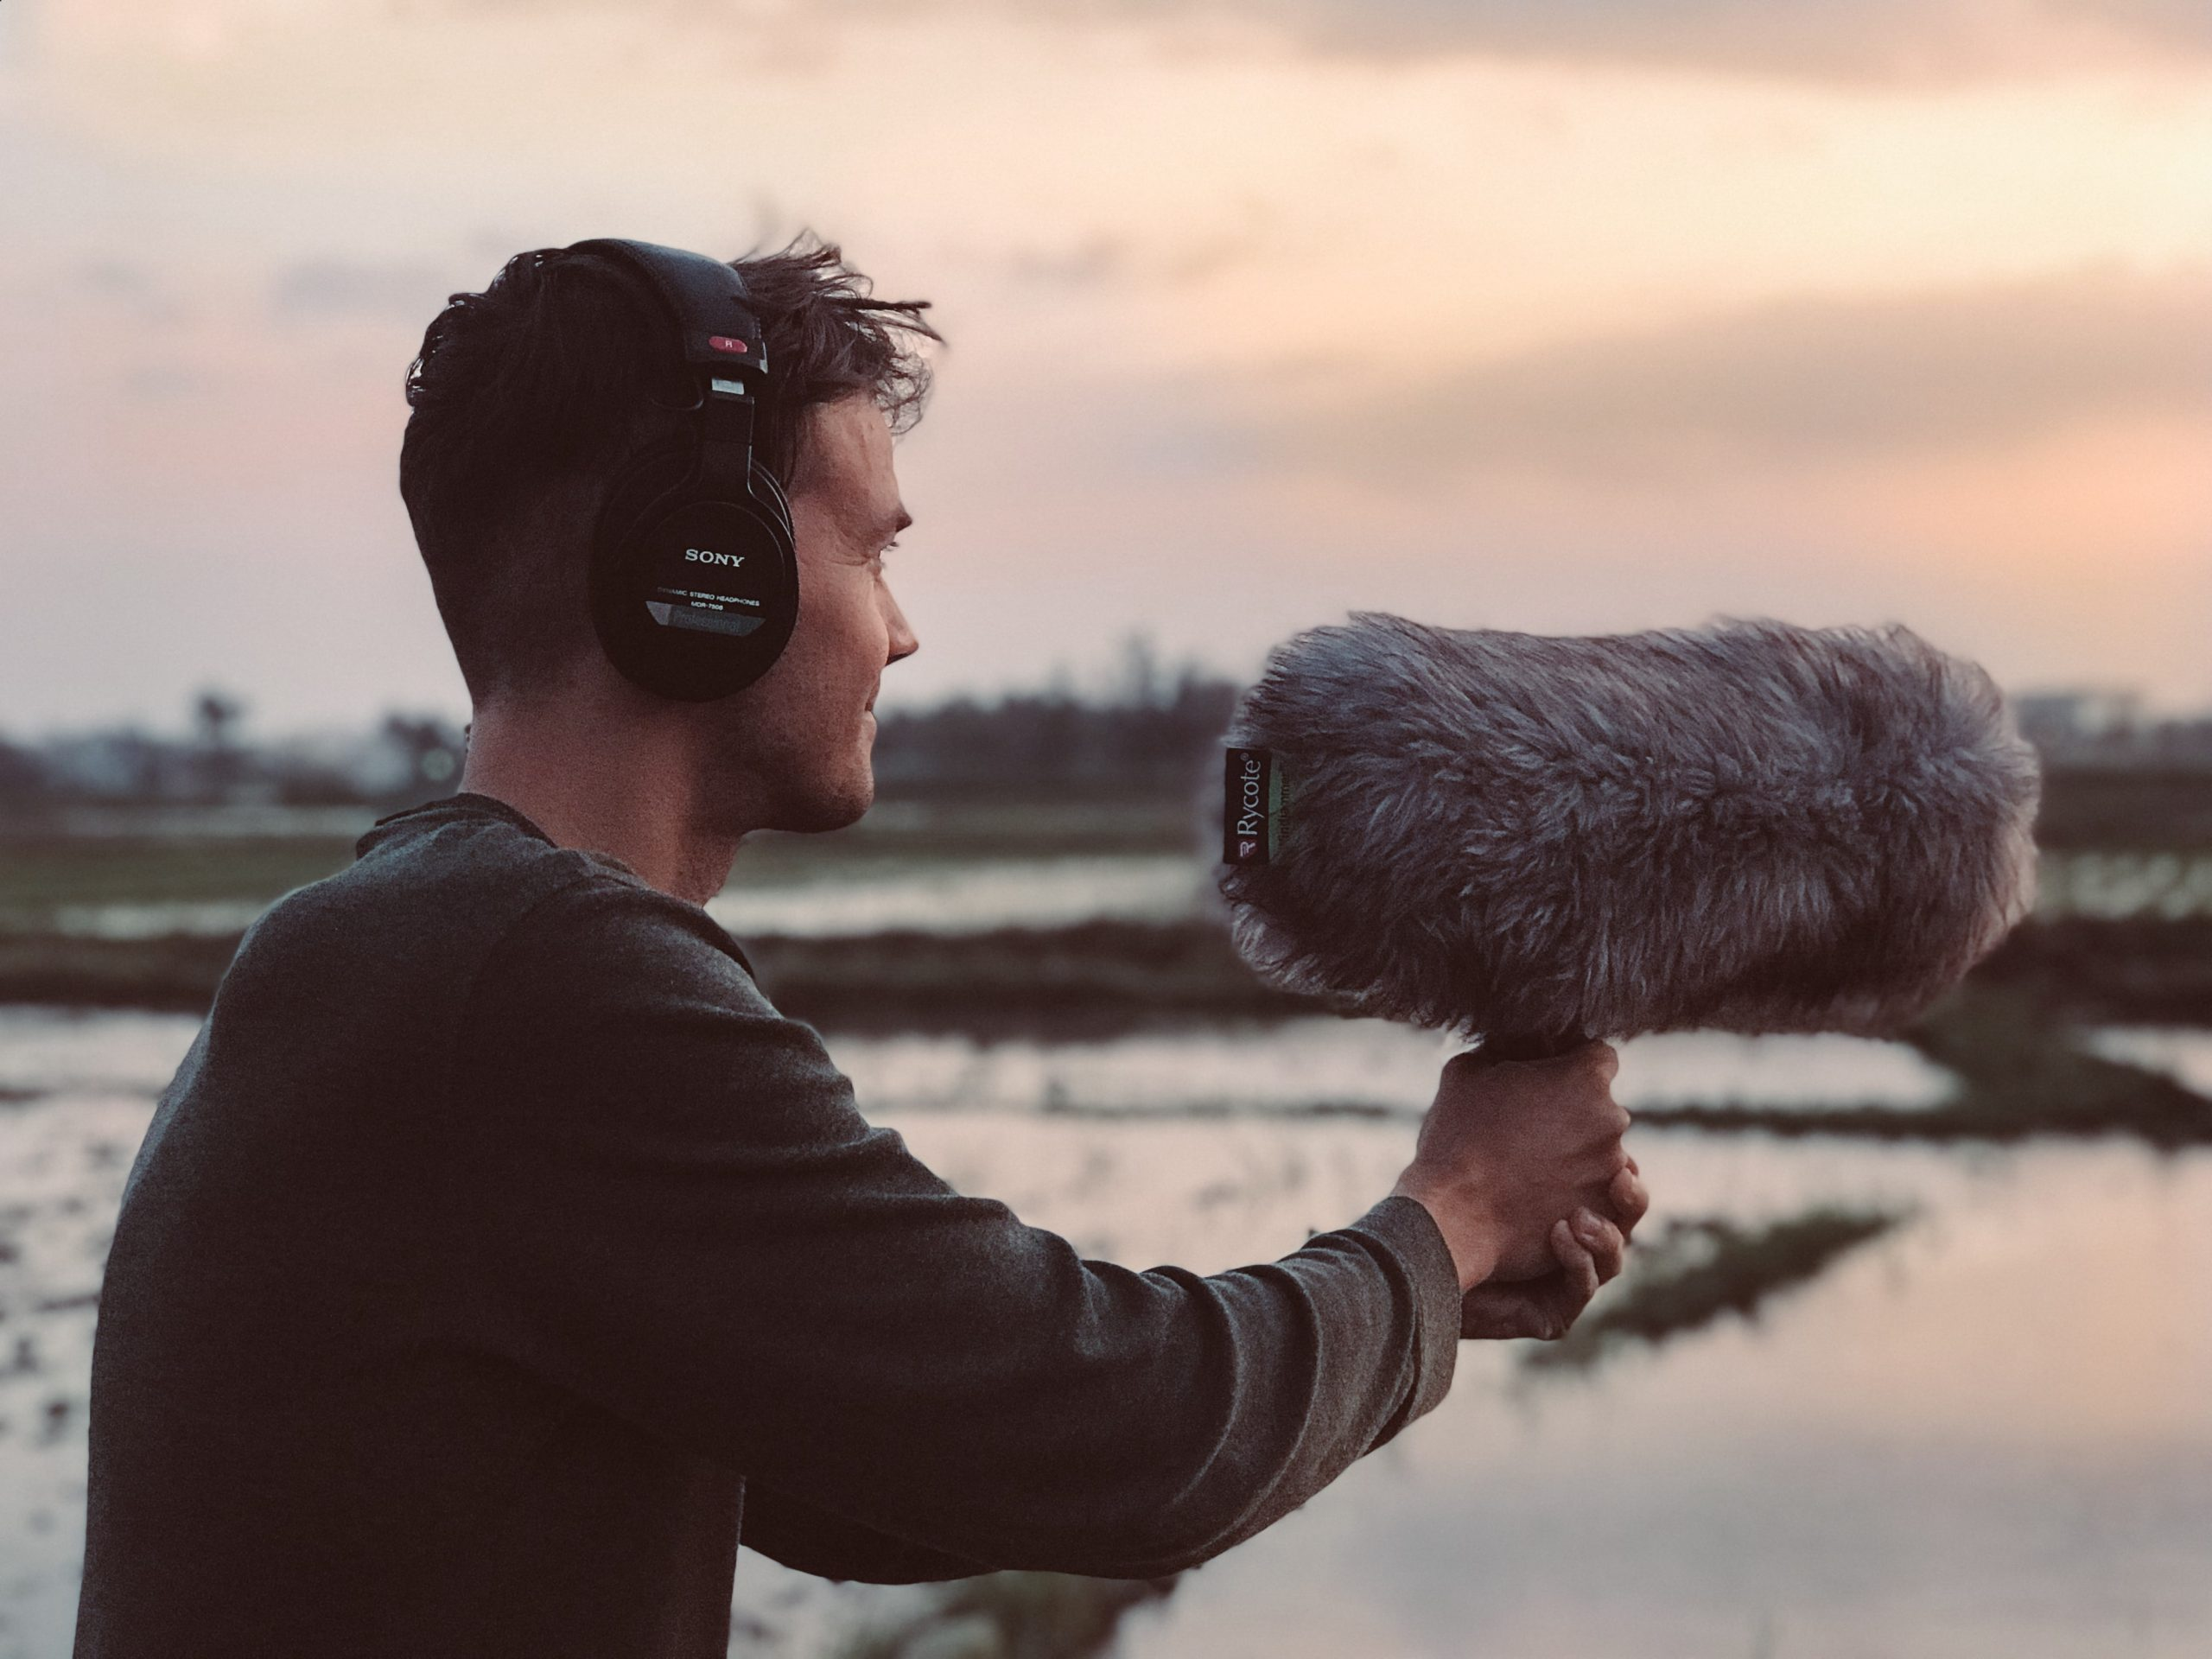 free-to-use-sounds-m4S8VG6y9Ds-unsplash